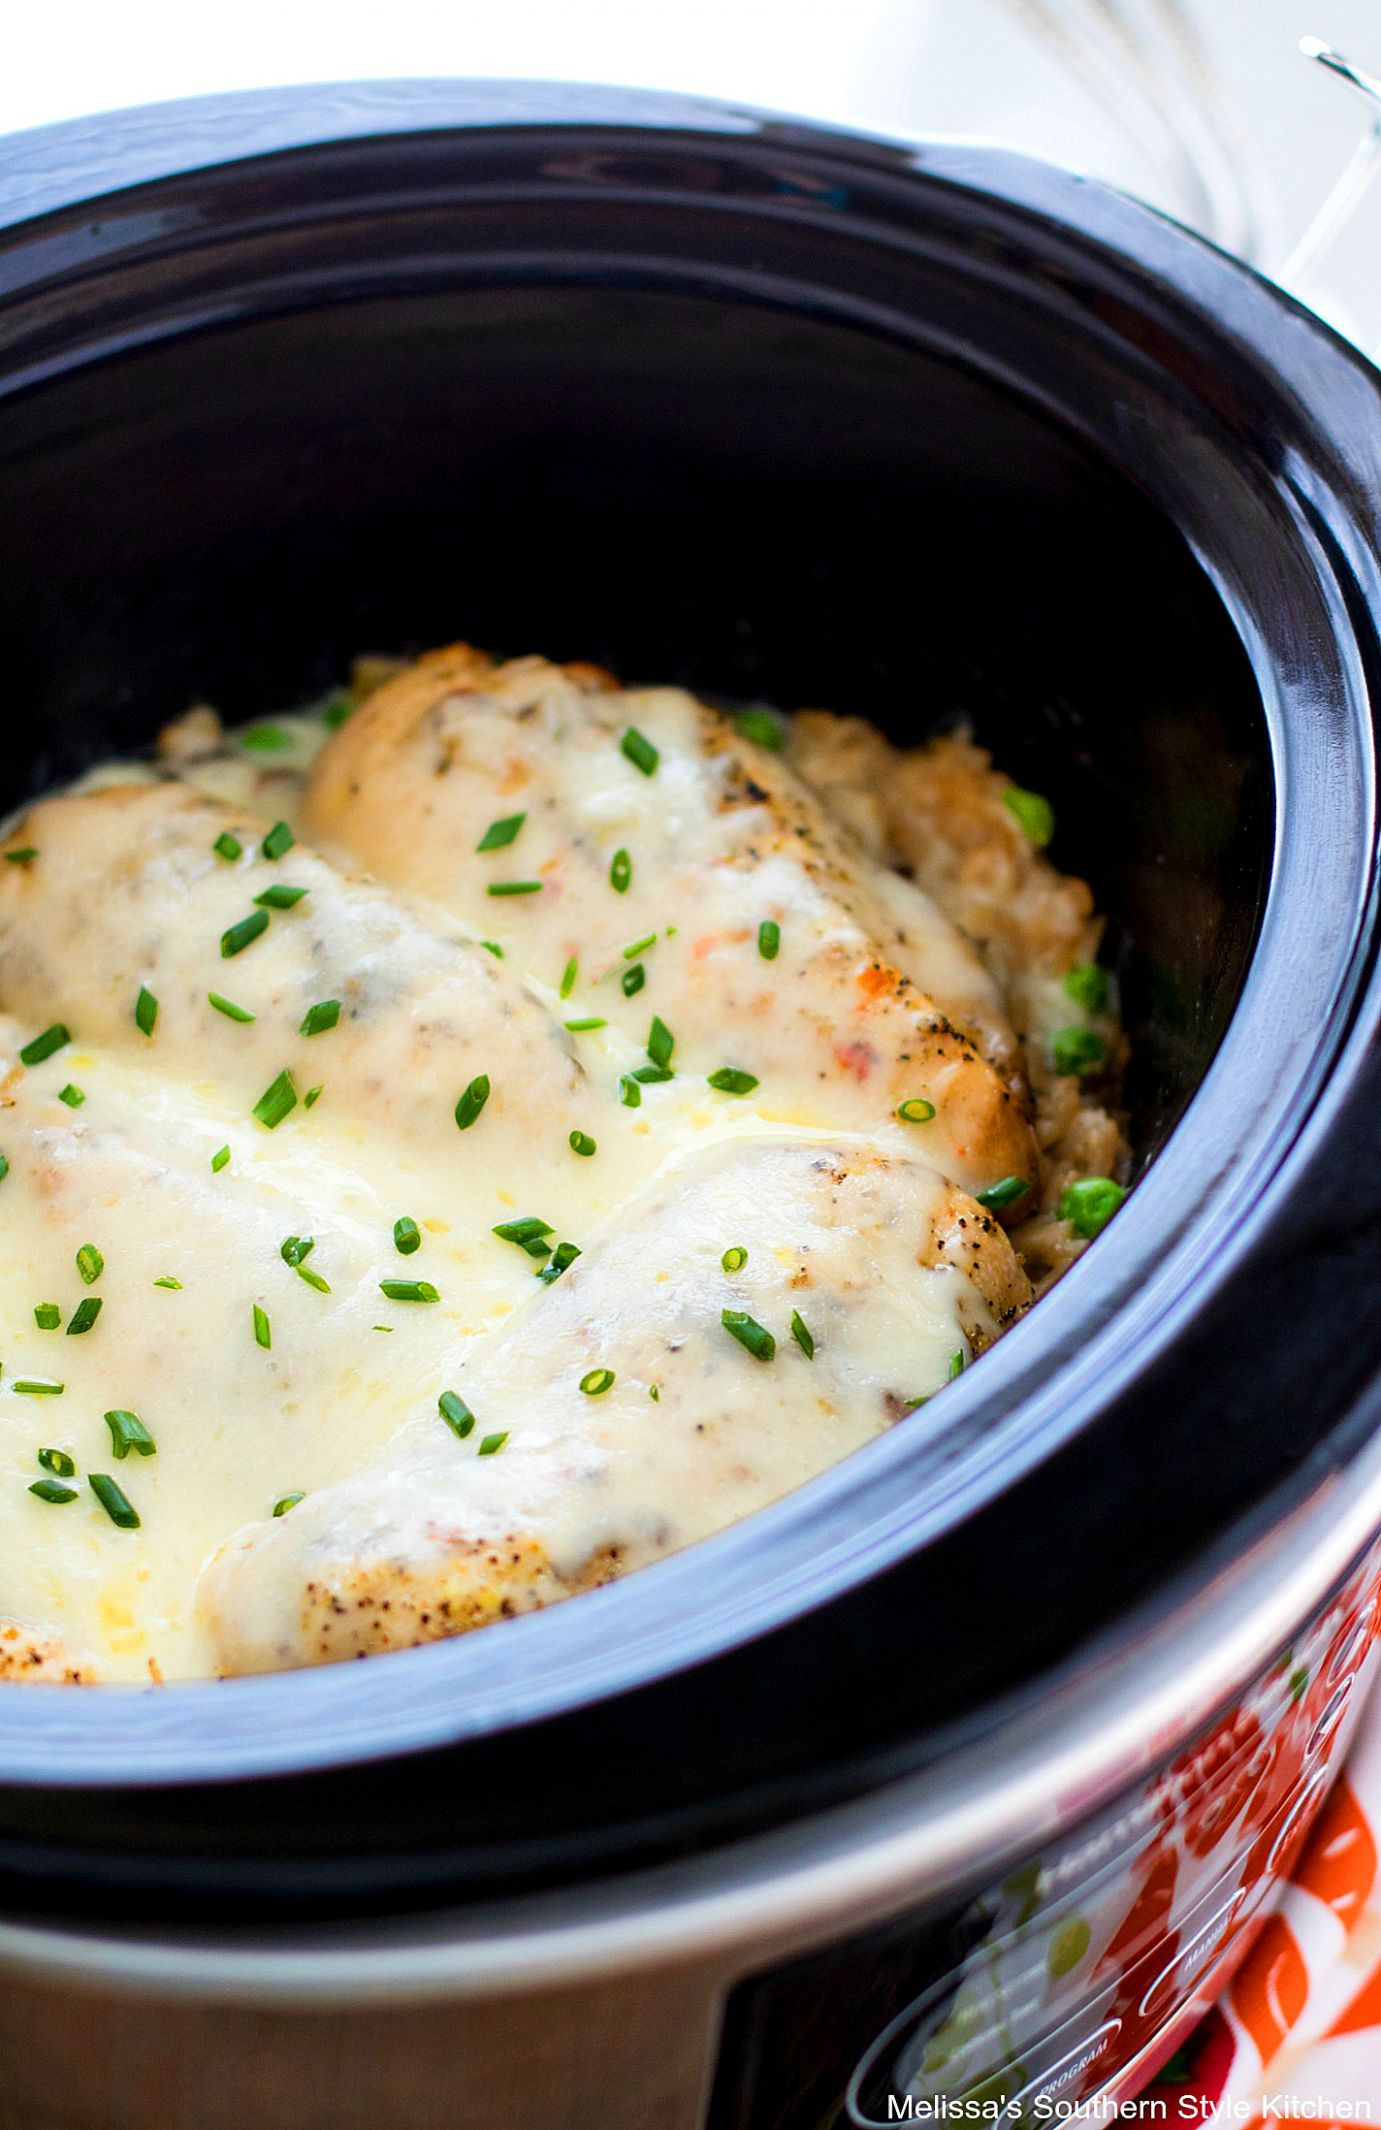 Crockpot Chicken and Rice - Recipes Chicken In Crock Pot